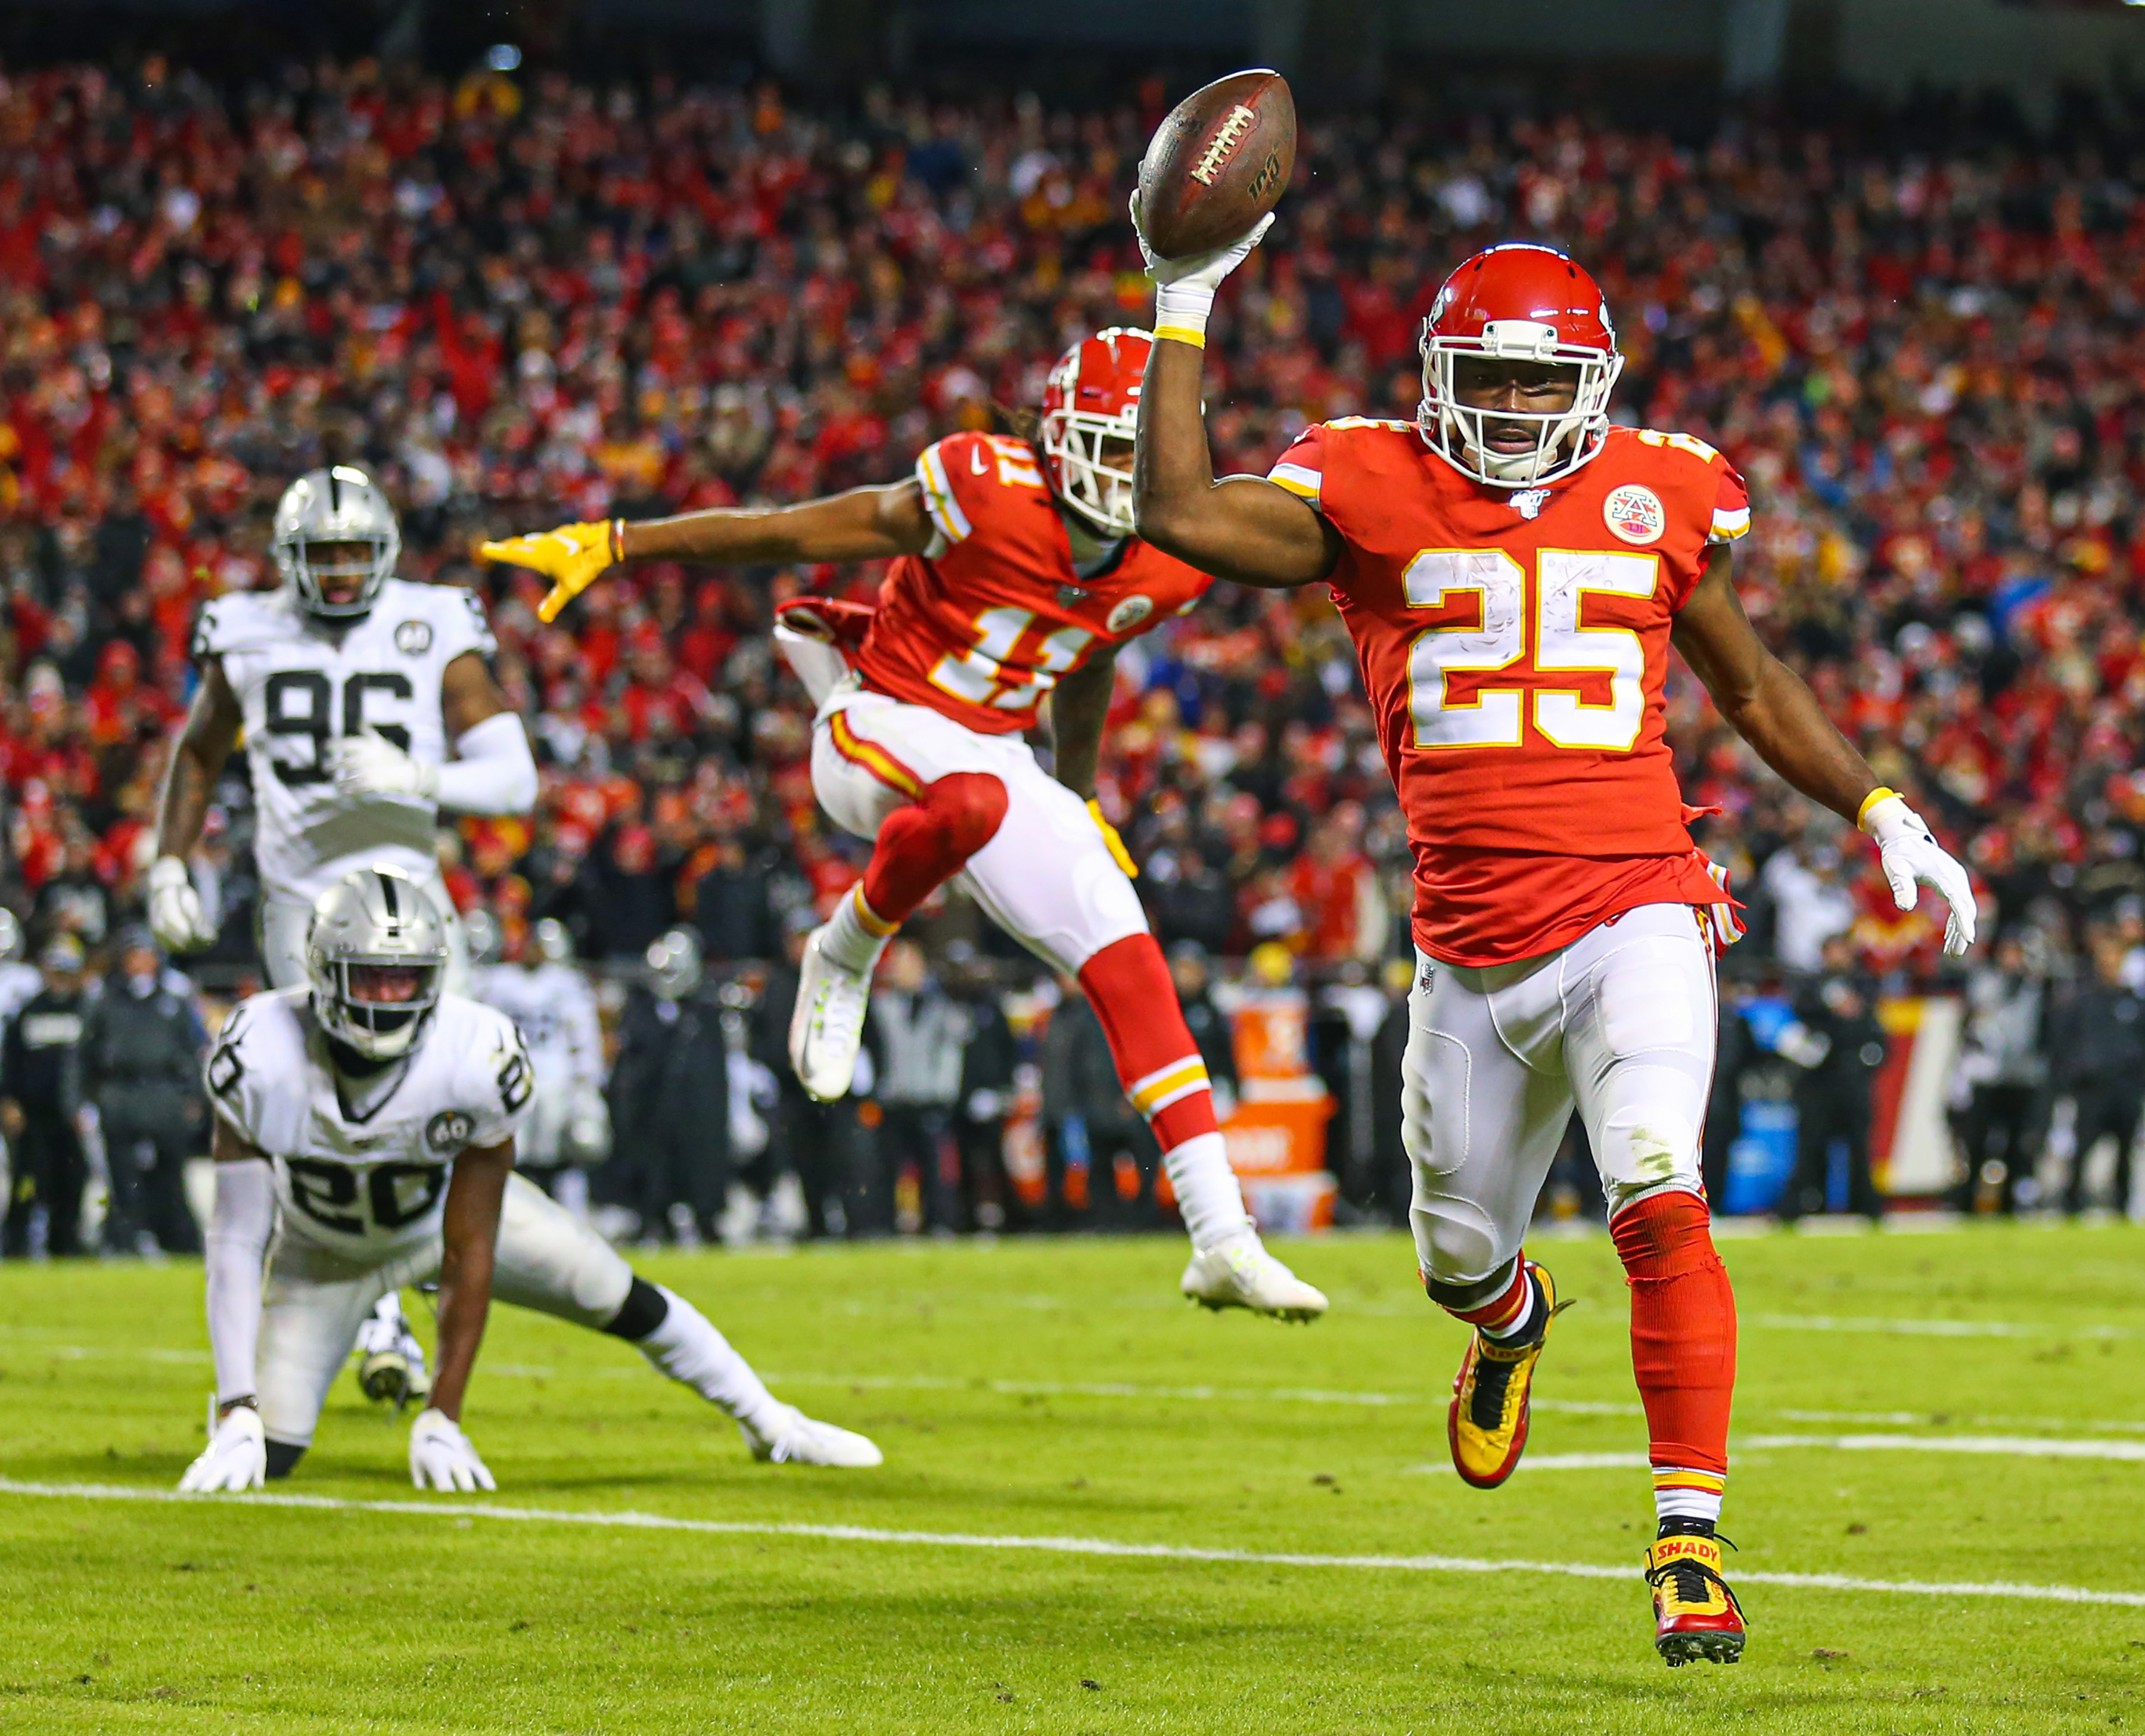 Kansas City Chiefs running back LeSean McCoy celebrates as he runs for a touchdown against the Oakland Raiders during the second half at Arrowhead Stadium.